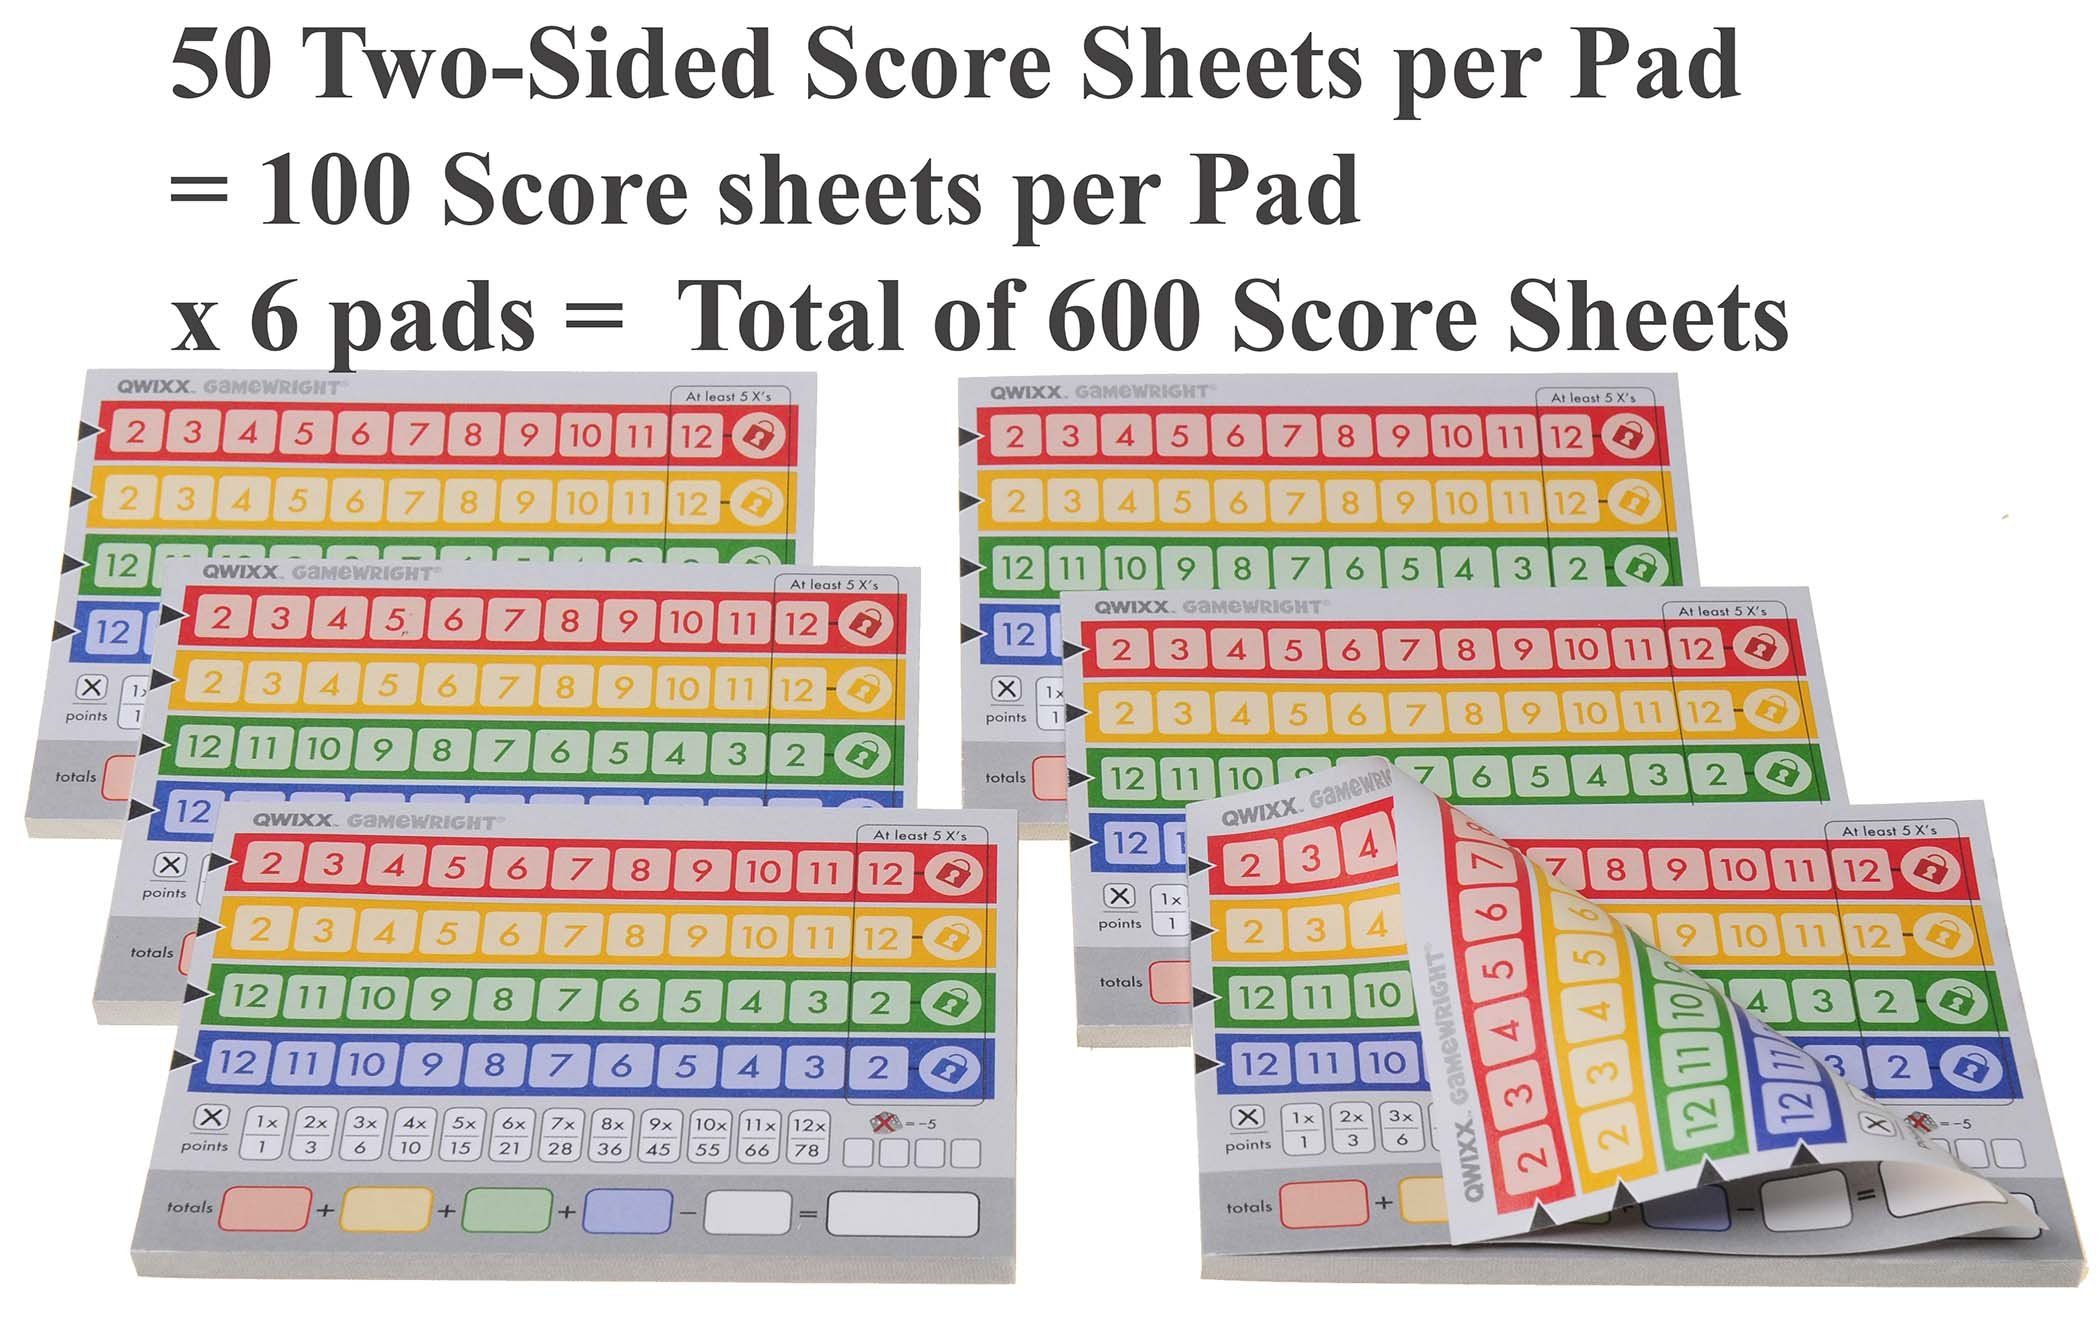 QWIXX 3 Replacement Score Pad Packs _ 600 Score Sheets _ Bonus Gold Metallic Cloth Drawstring Pouch _ Bundled Items by Deluxe Games and Puzzles (Image #2)